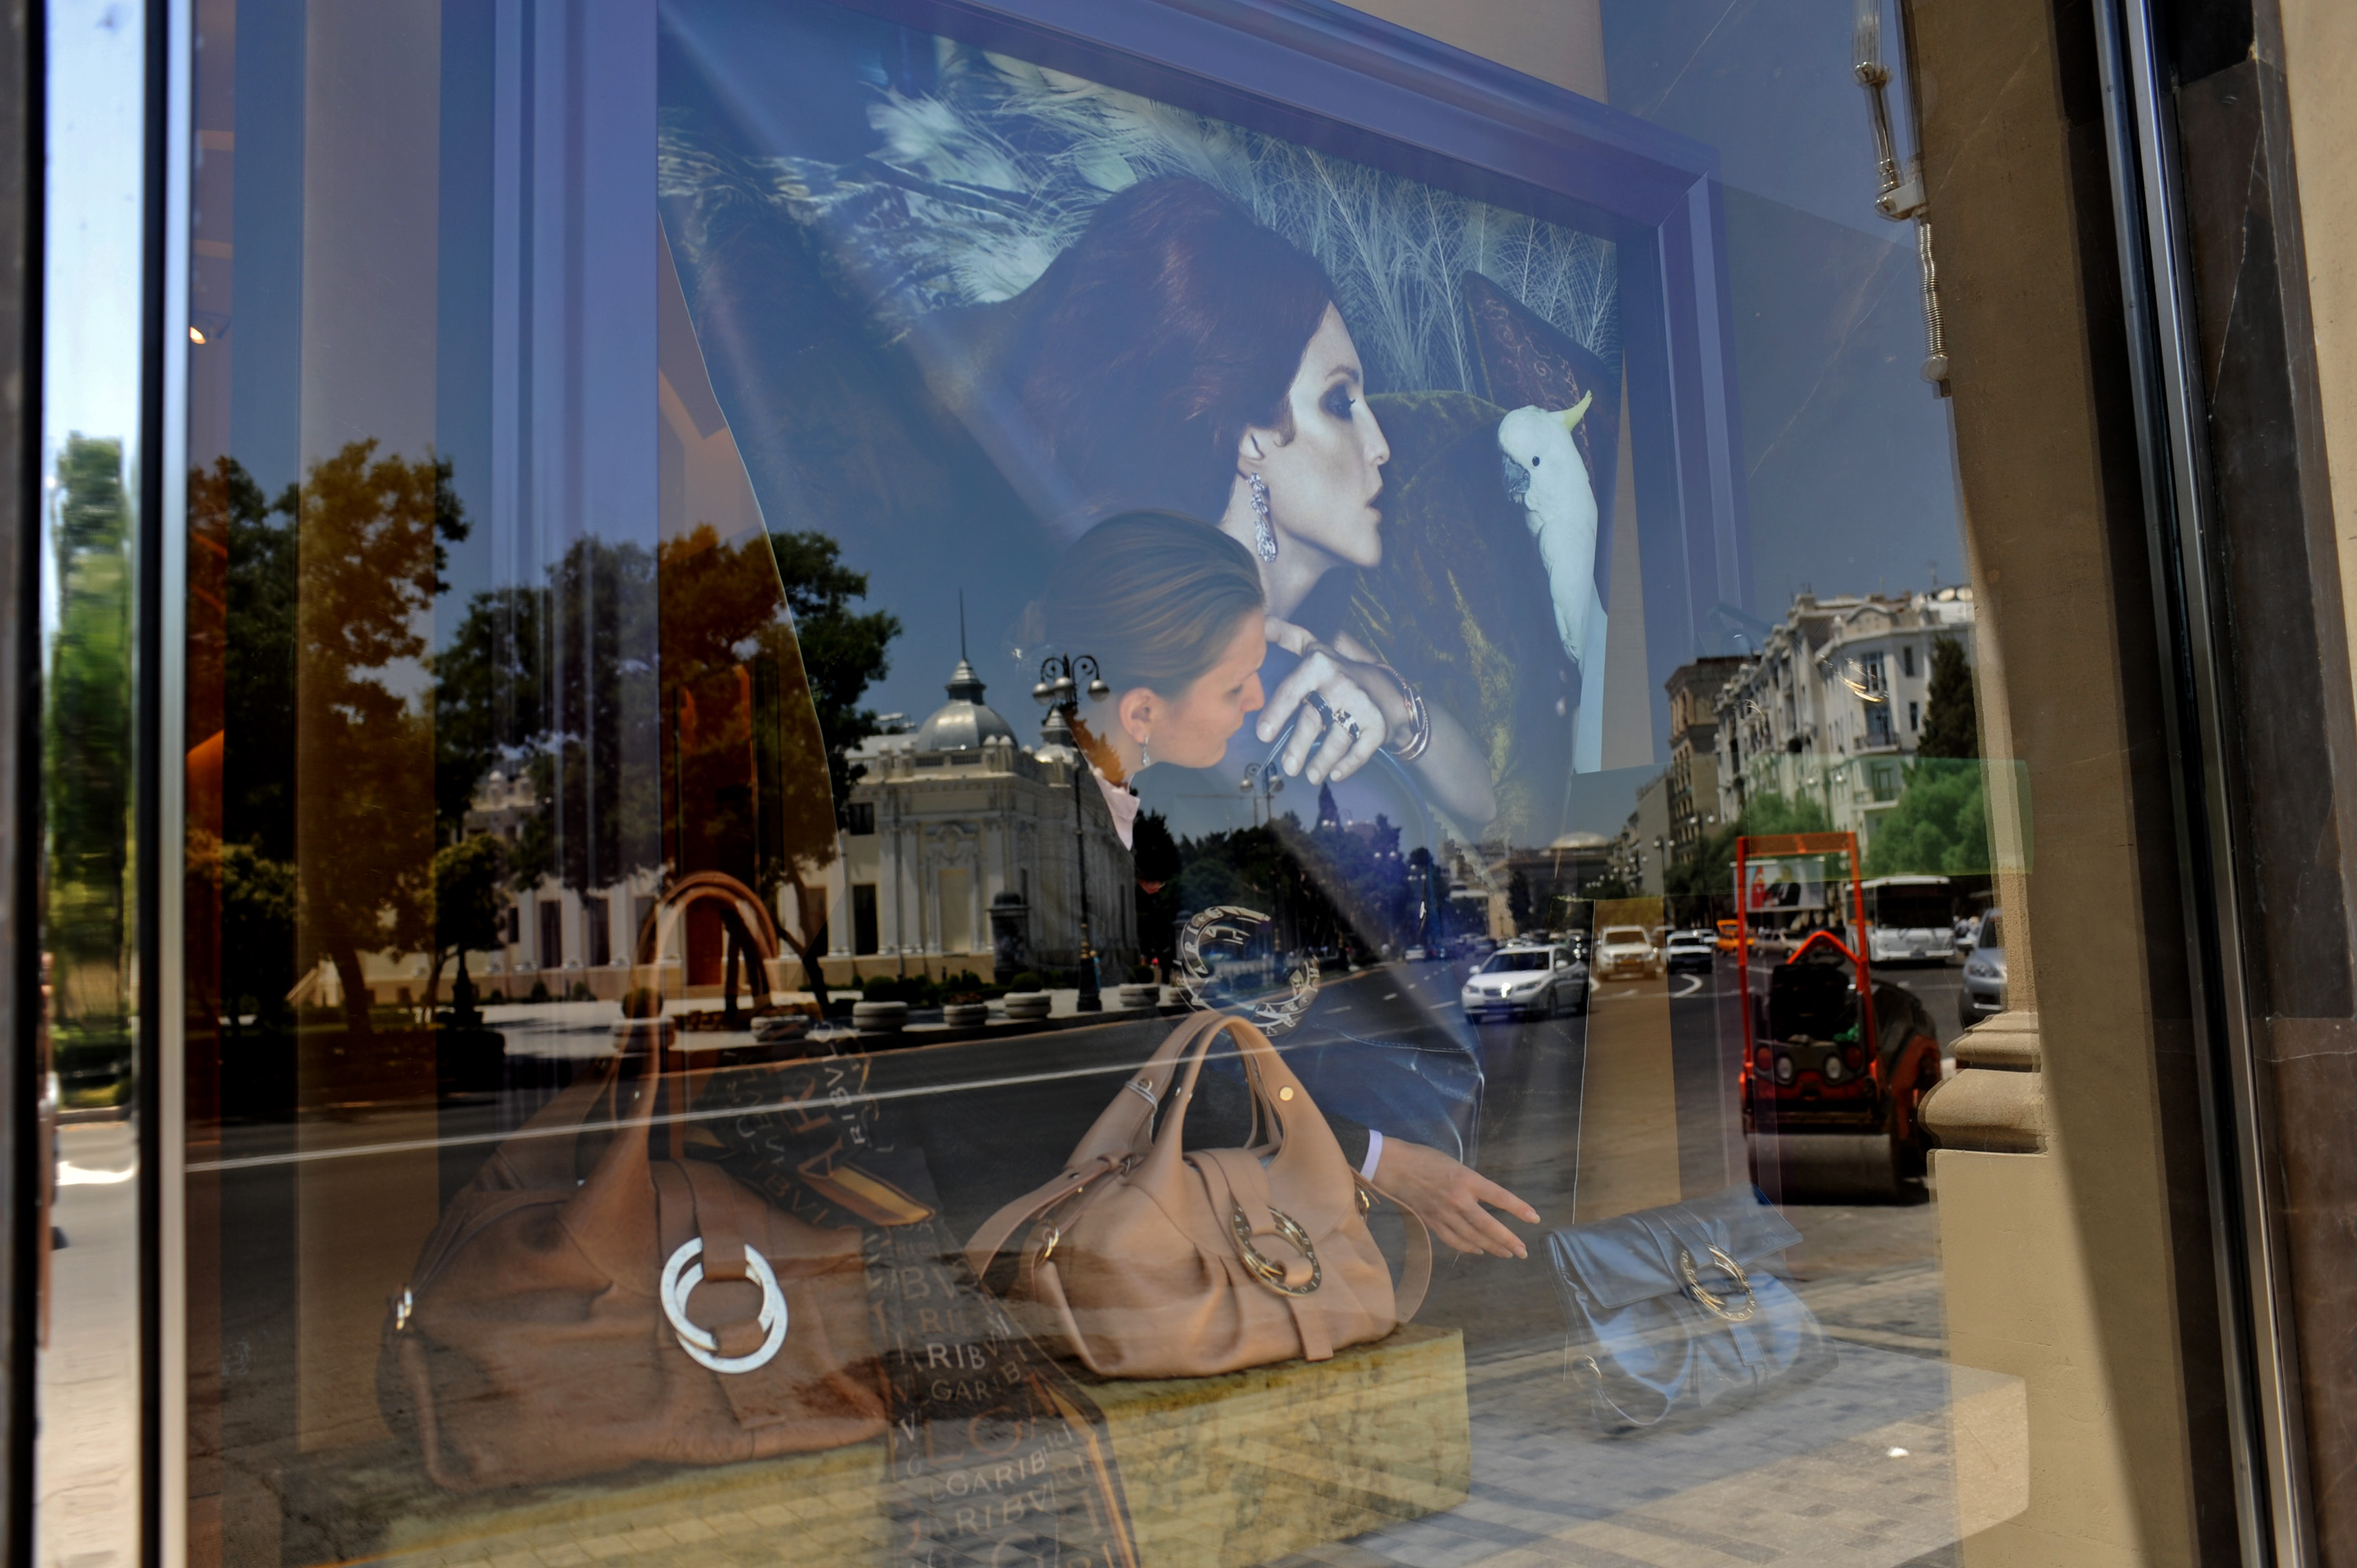 BAKU, AZERBAIJAN.  A saleswoman adjusts the window display at Bulgari on Neftiler Prospekt, or Oil Worker's Boulevard on July 2, 2010.  Luxury shopping in downtown Baku is one symptom of the city within the city or the country within the country where the elite, estimated at 50,000, control much of the country's income and profit from oil revenues, leaving a wide gap in the absence of a middle class between them and the rest of the country.